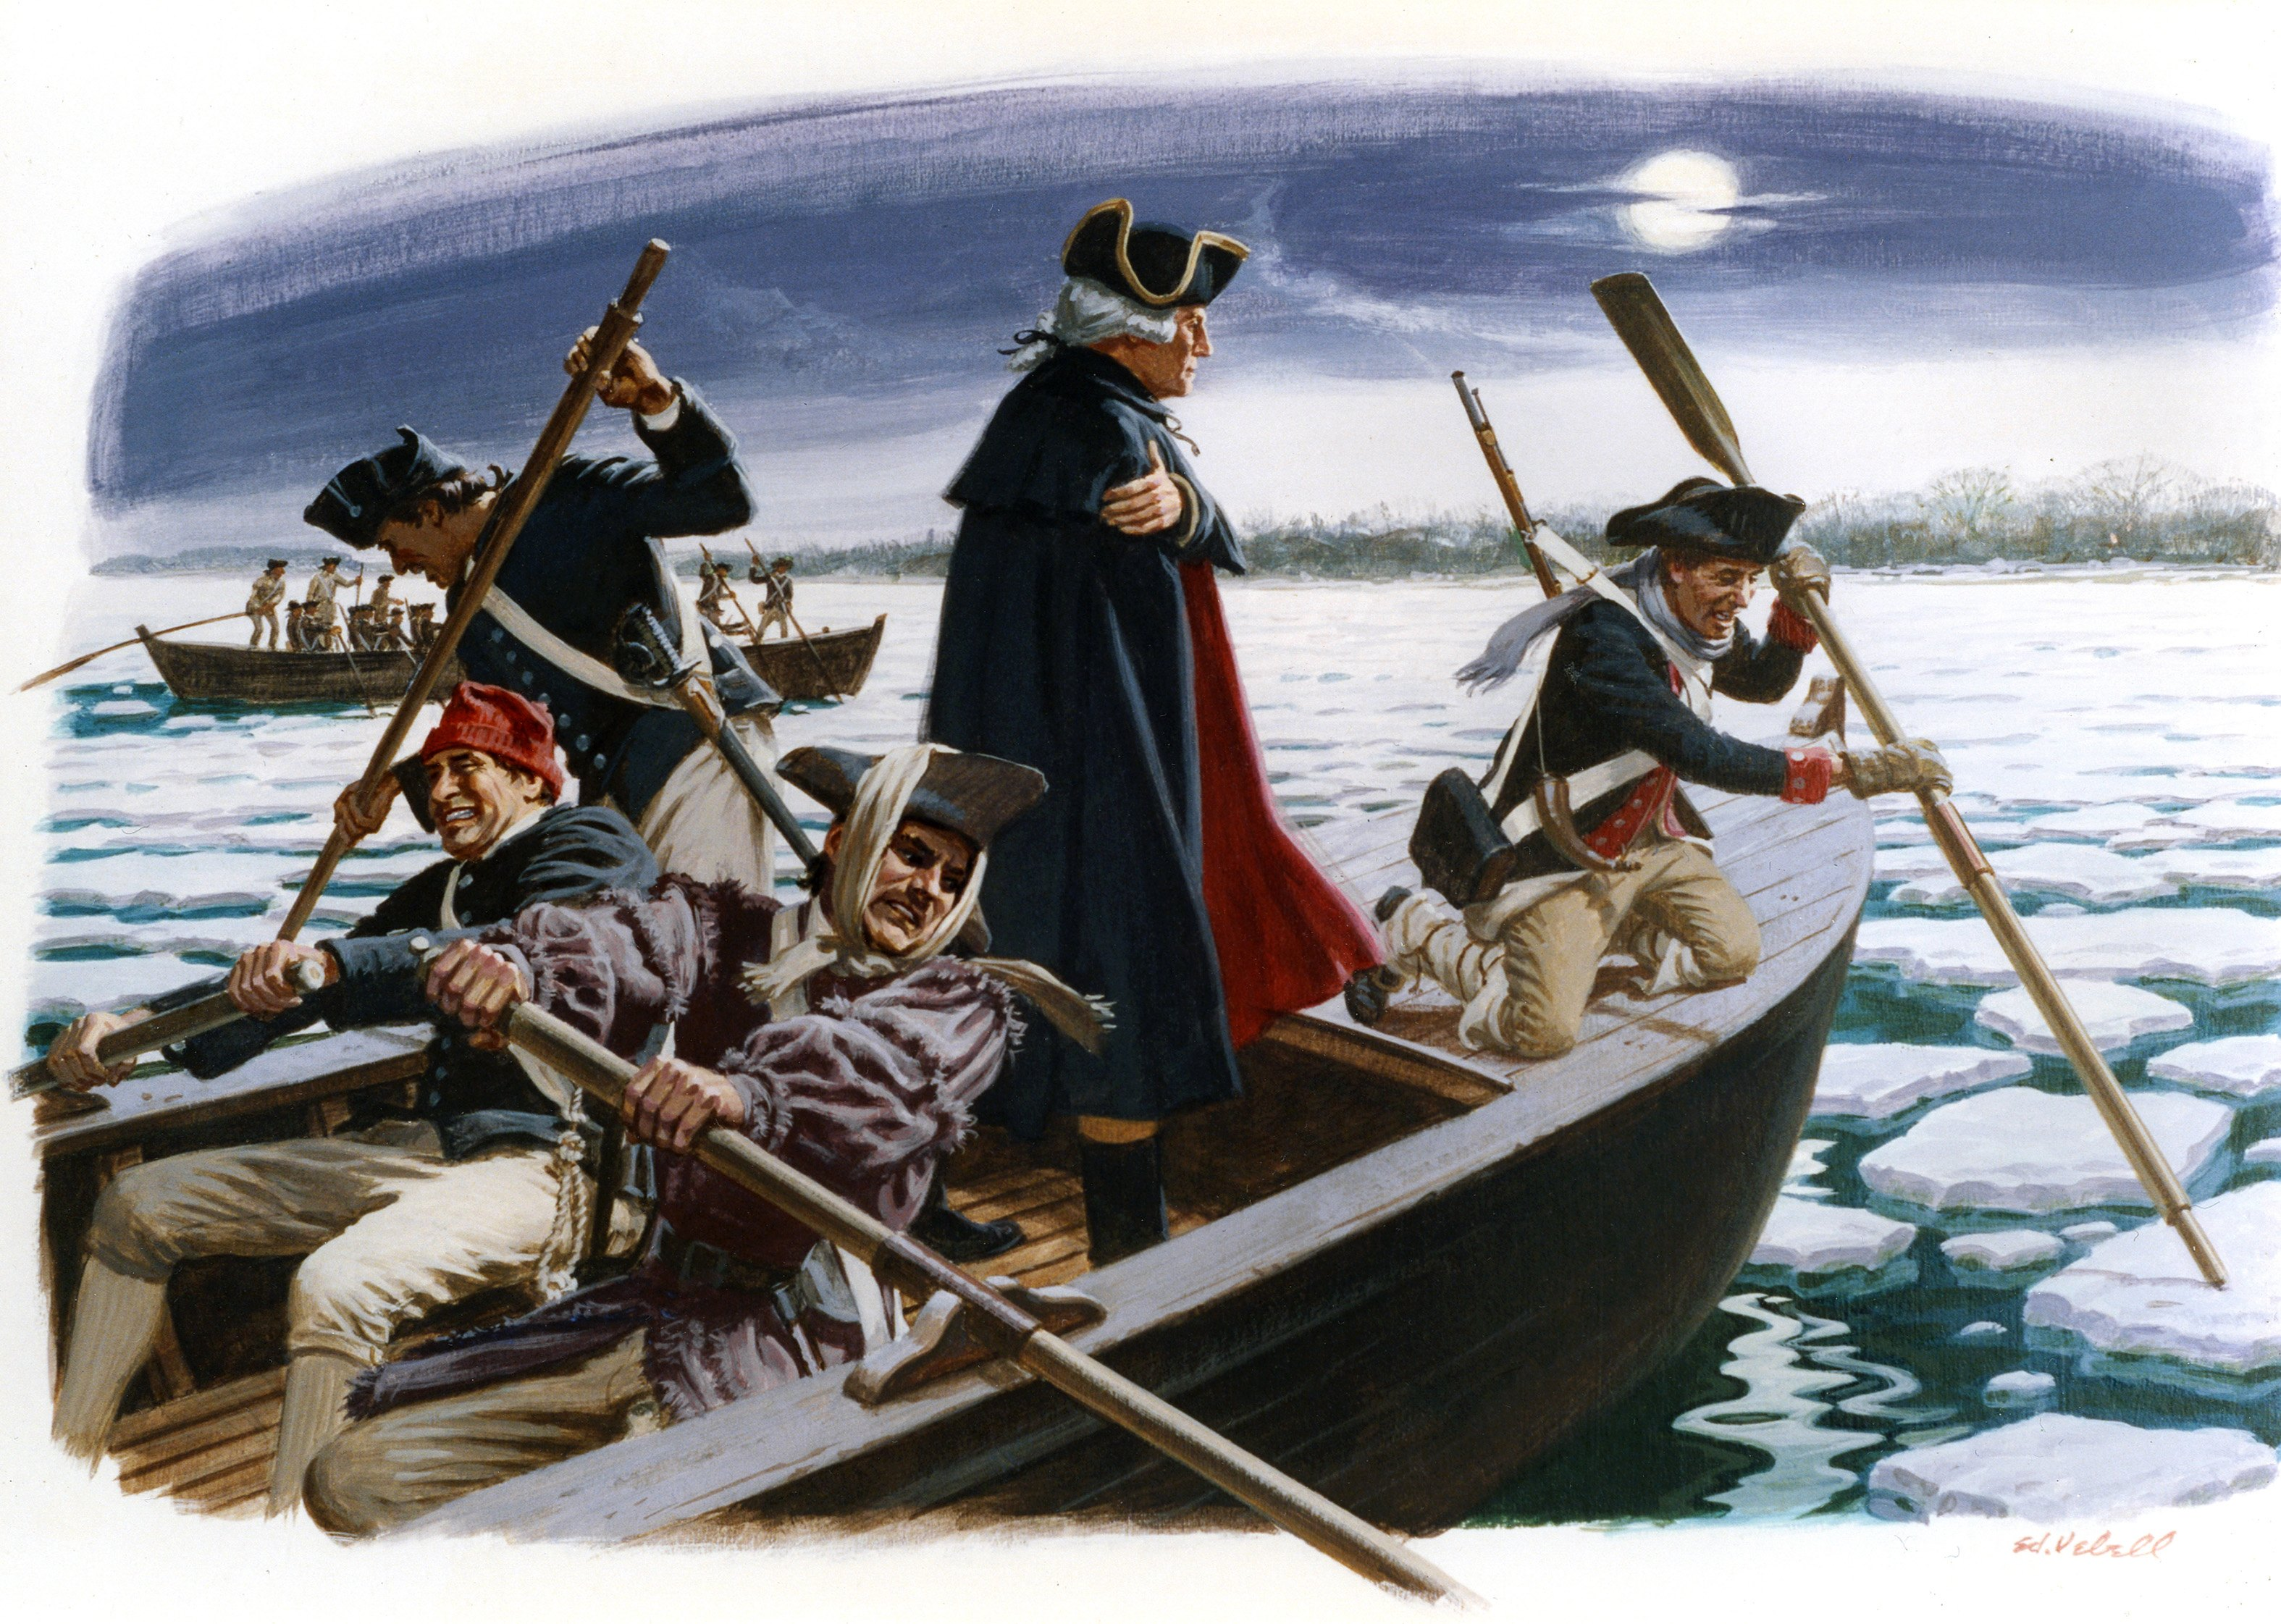 A painting depicting General George Washington's crossing of the Delaware River from on December 25, 1776 between Pennsylvania and New Jersey.